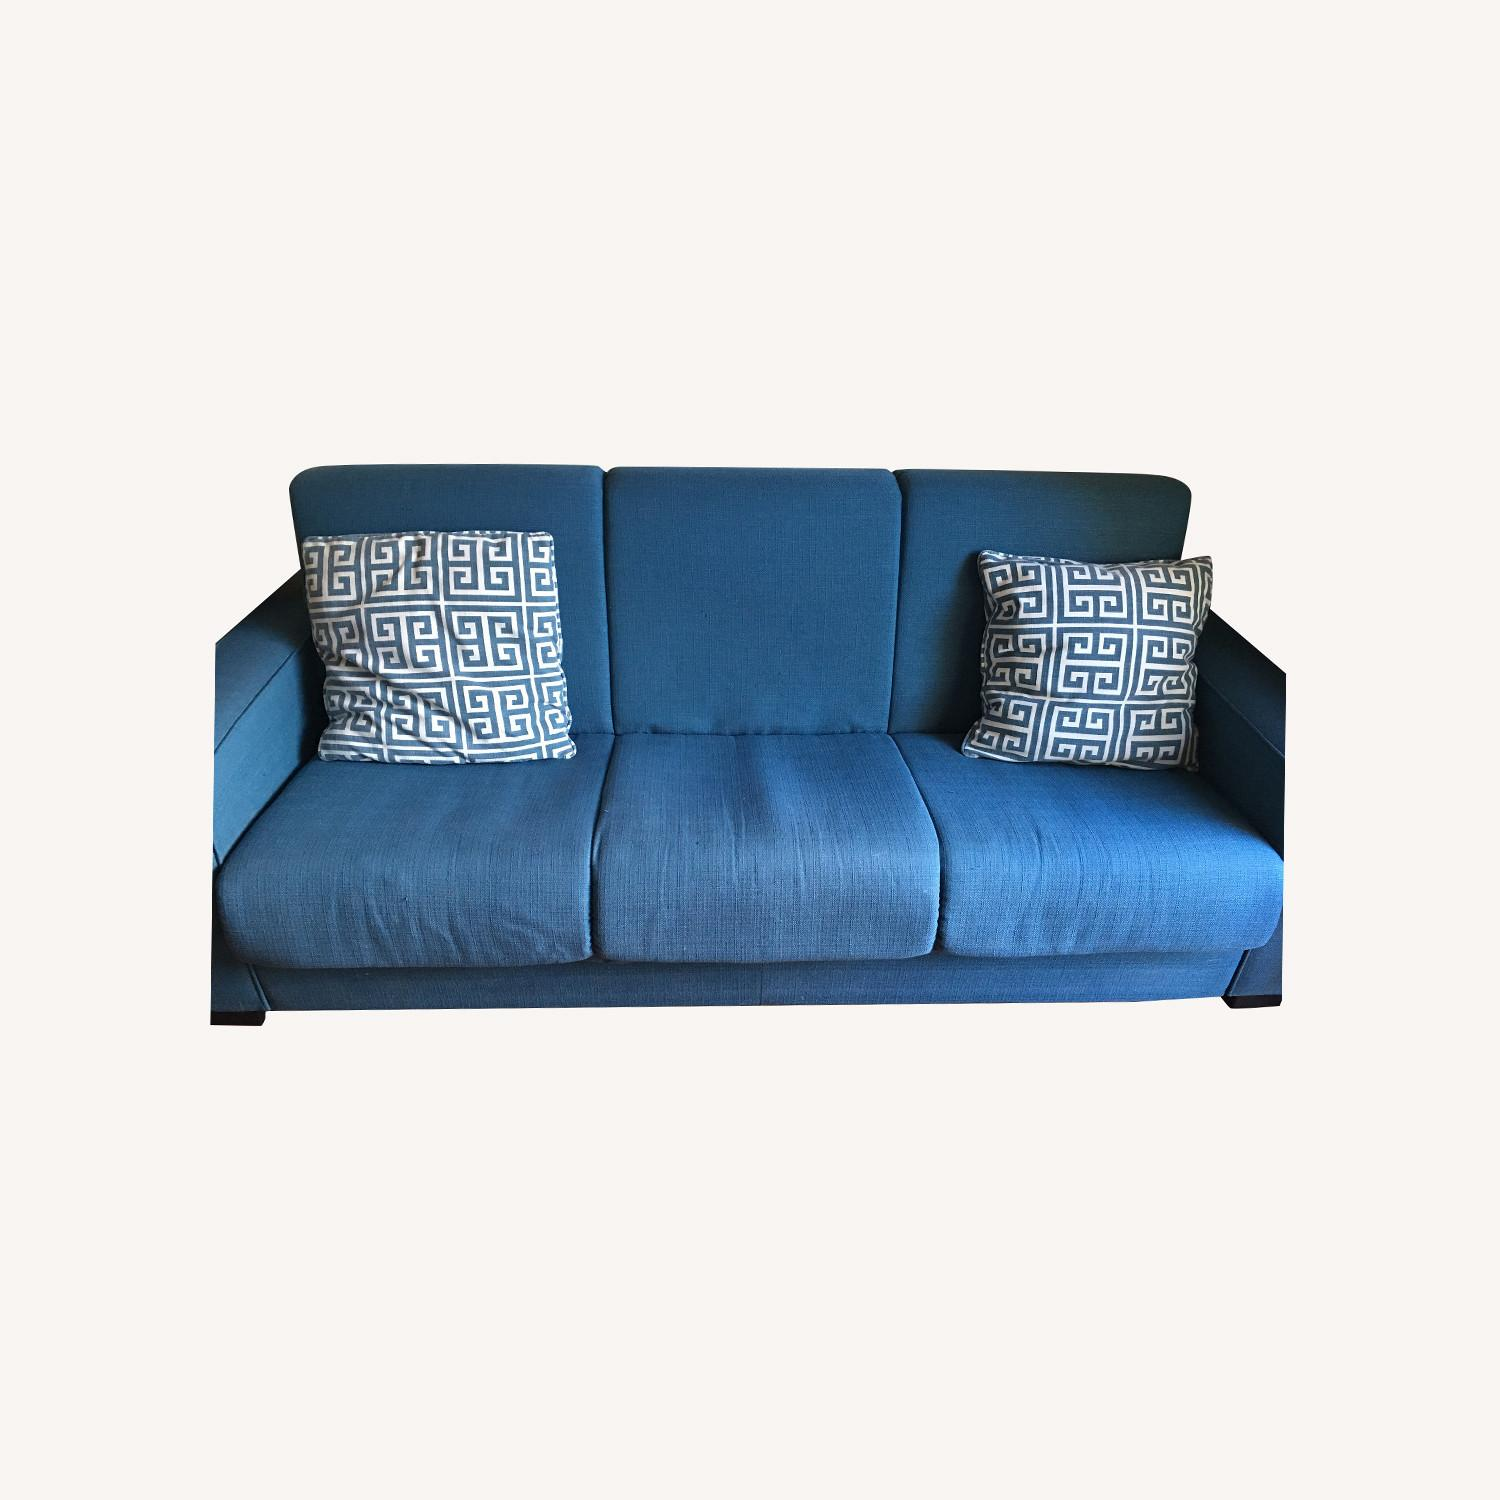 3 Seaters Sofa Bed - image-0